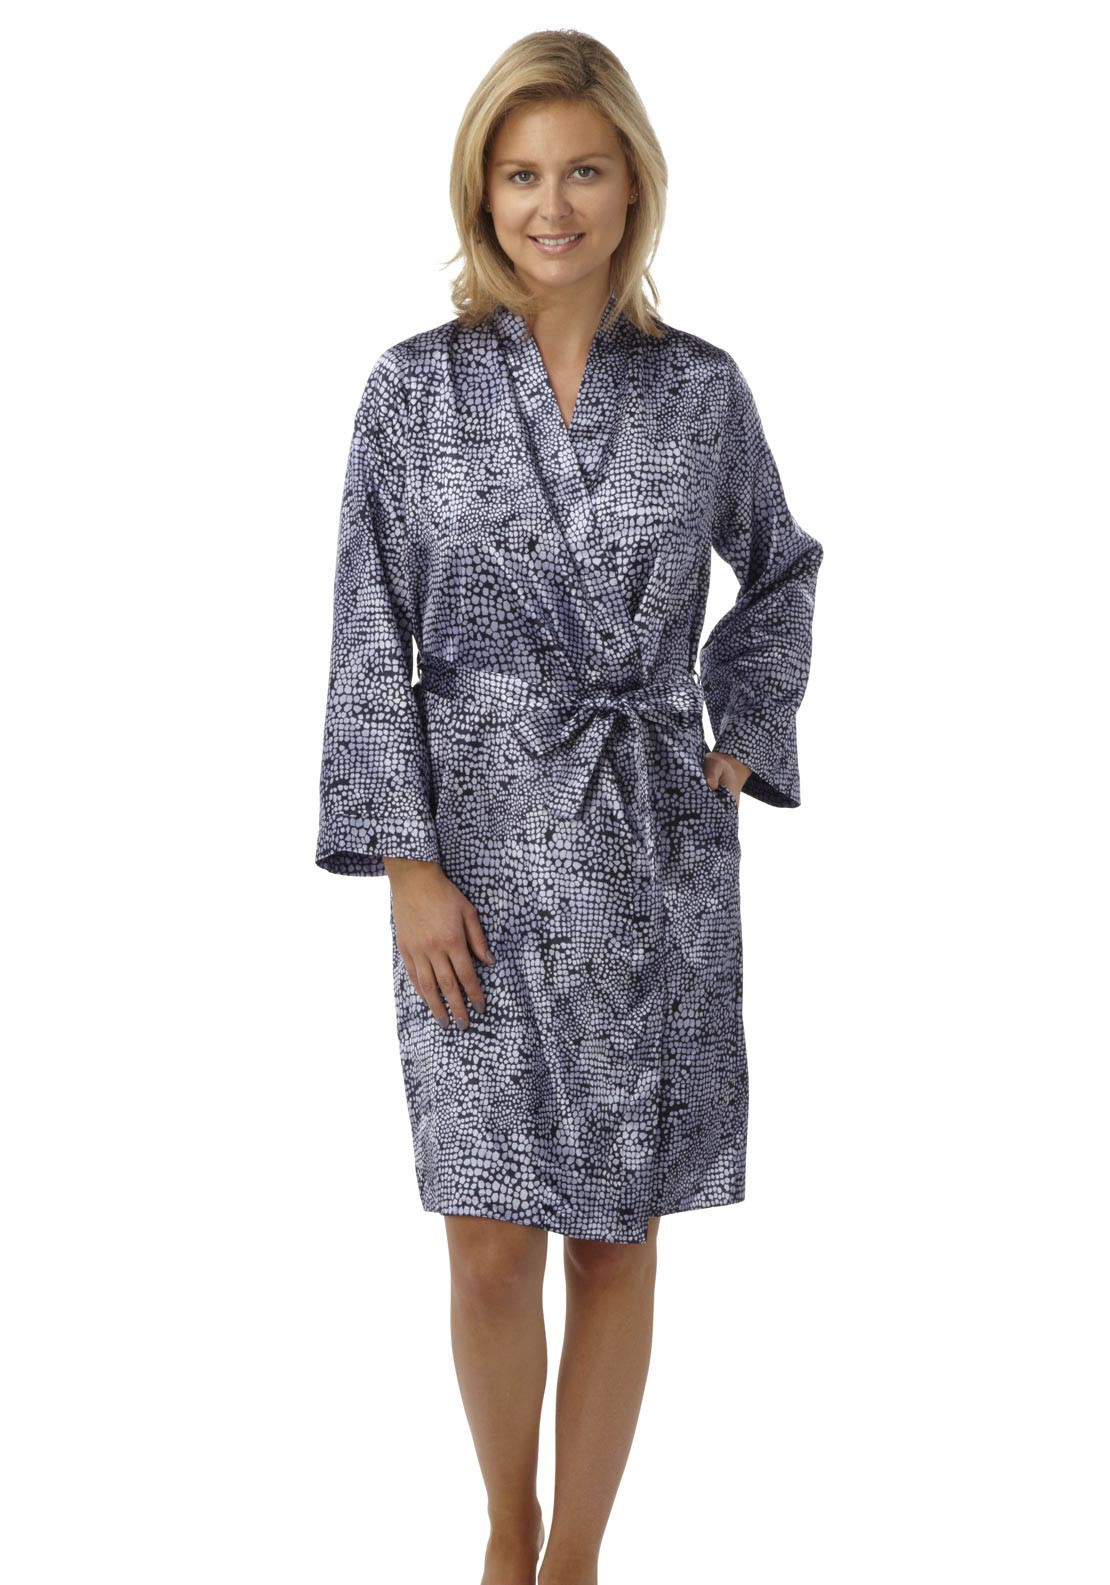 Indigo Sky Geometric Print Satin Dressing Gown, Blue and Navy